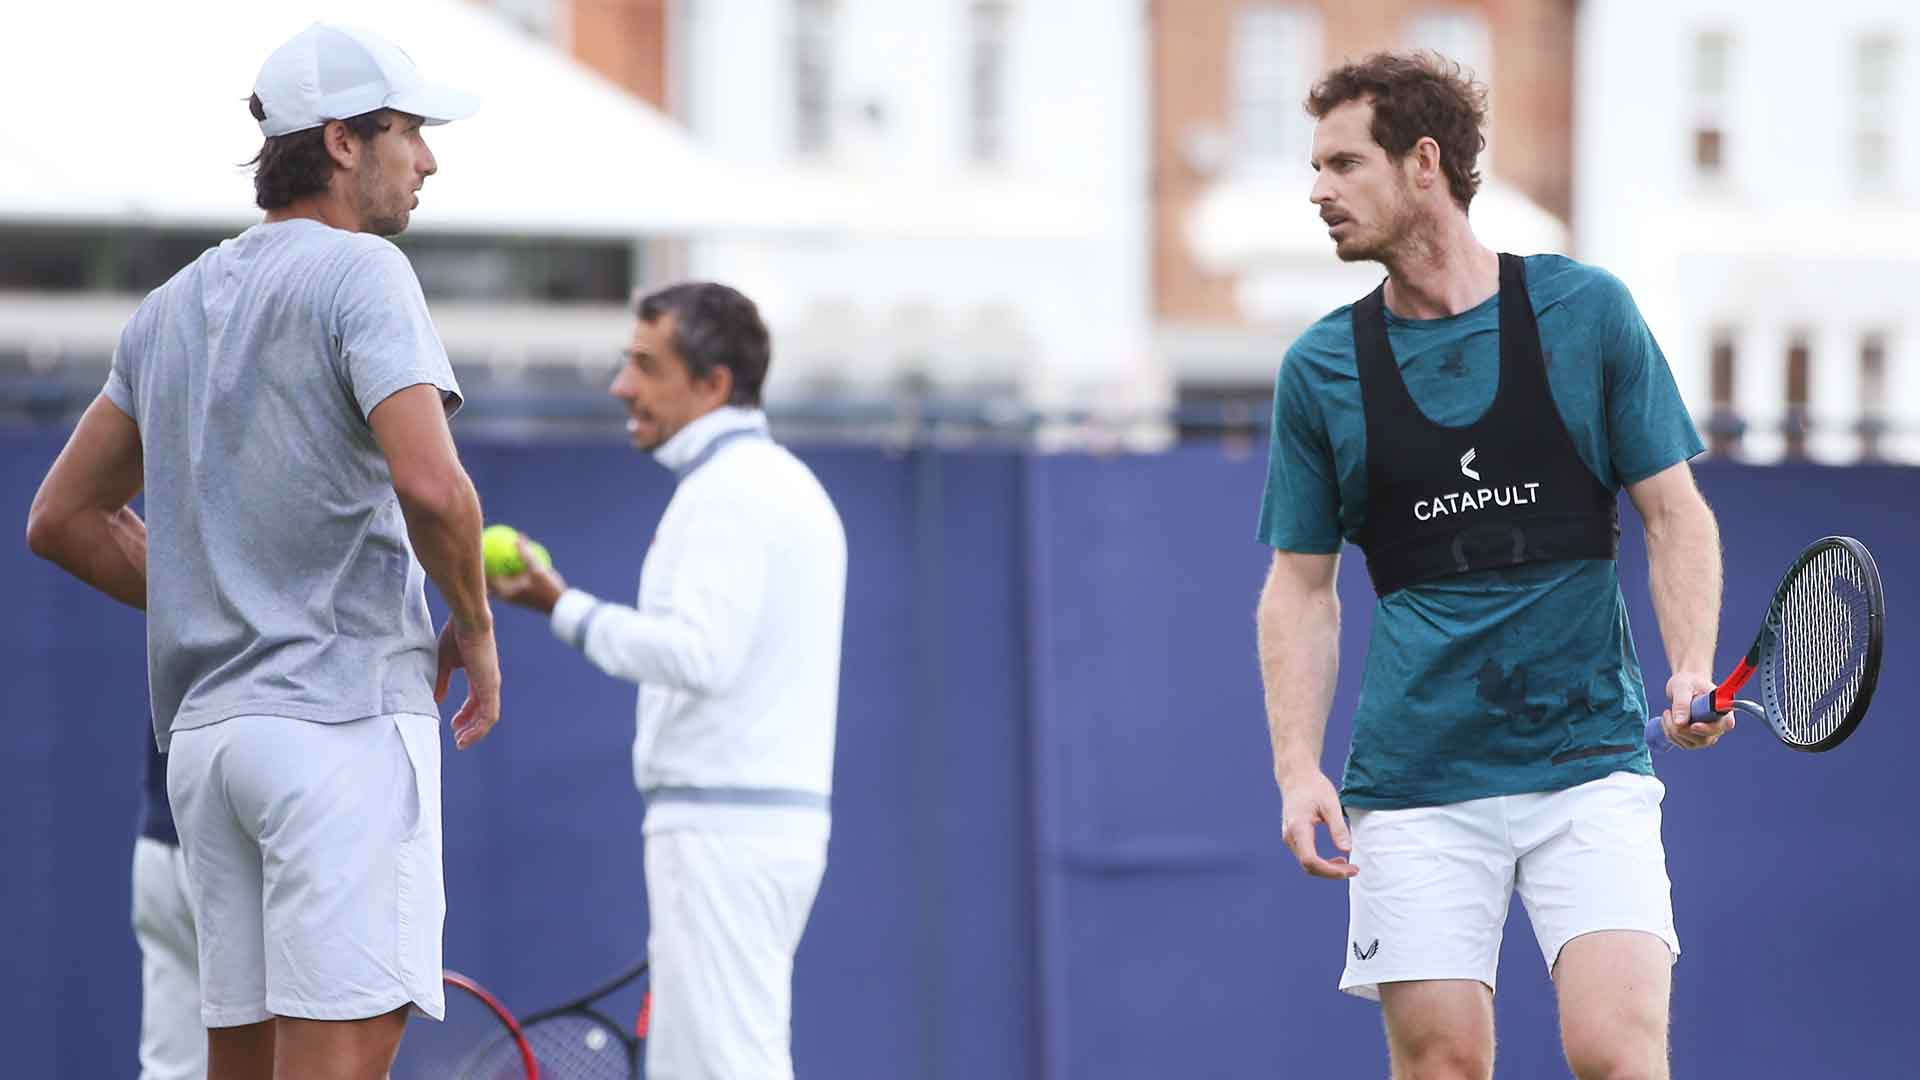 <a href='https://www.atptour.com/en/players/feliciano-lopez/l397/overview'>Feliciano Lopez</a> and <a href='https://www.atptour.com/en/players/andy-murray/mc10/overview'>Andy Murray</a> practise at the Queen's Club ahead of the <a href='https://www.atptour.com/en/tournaments/london/311/overview'>Fever-Tree Championships</a>.